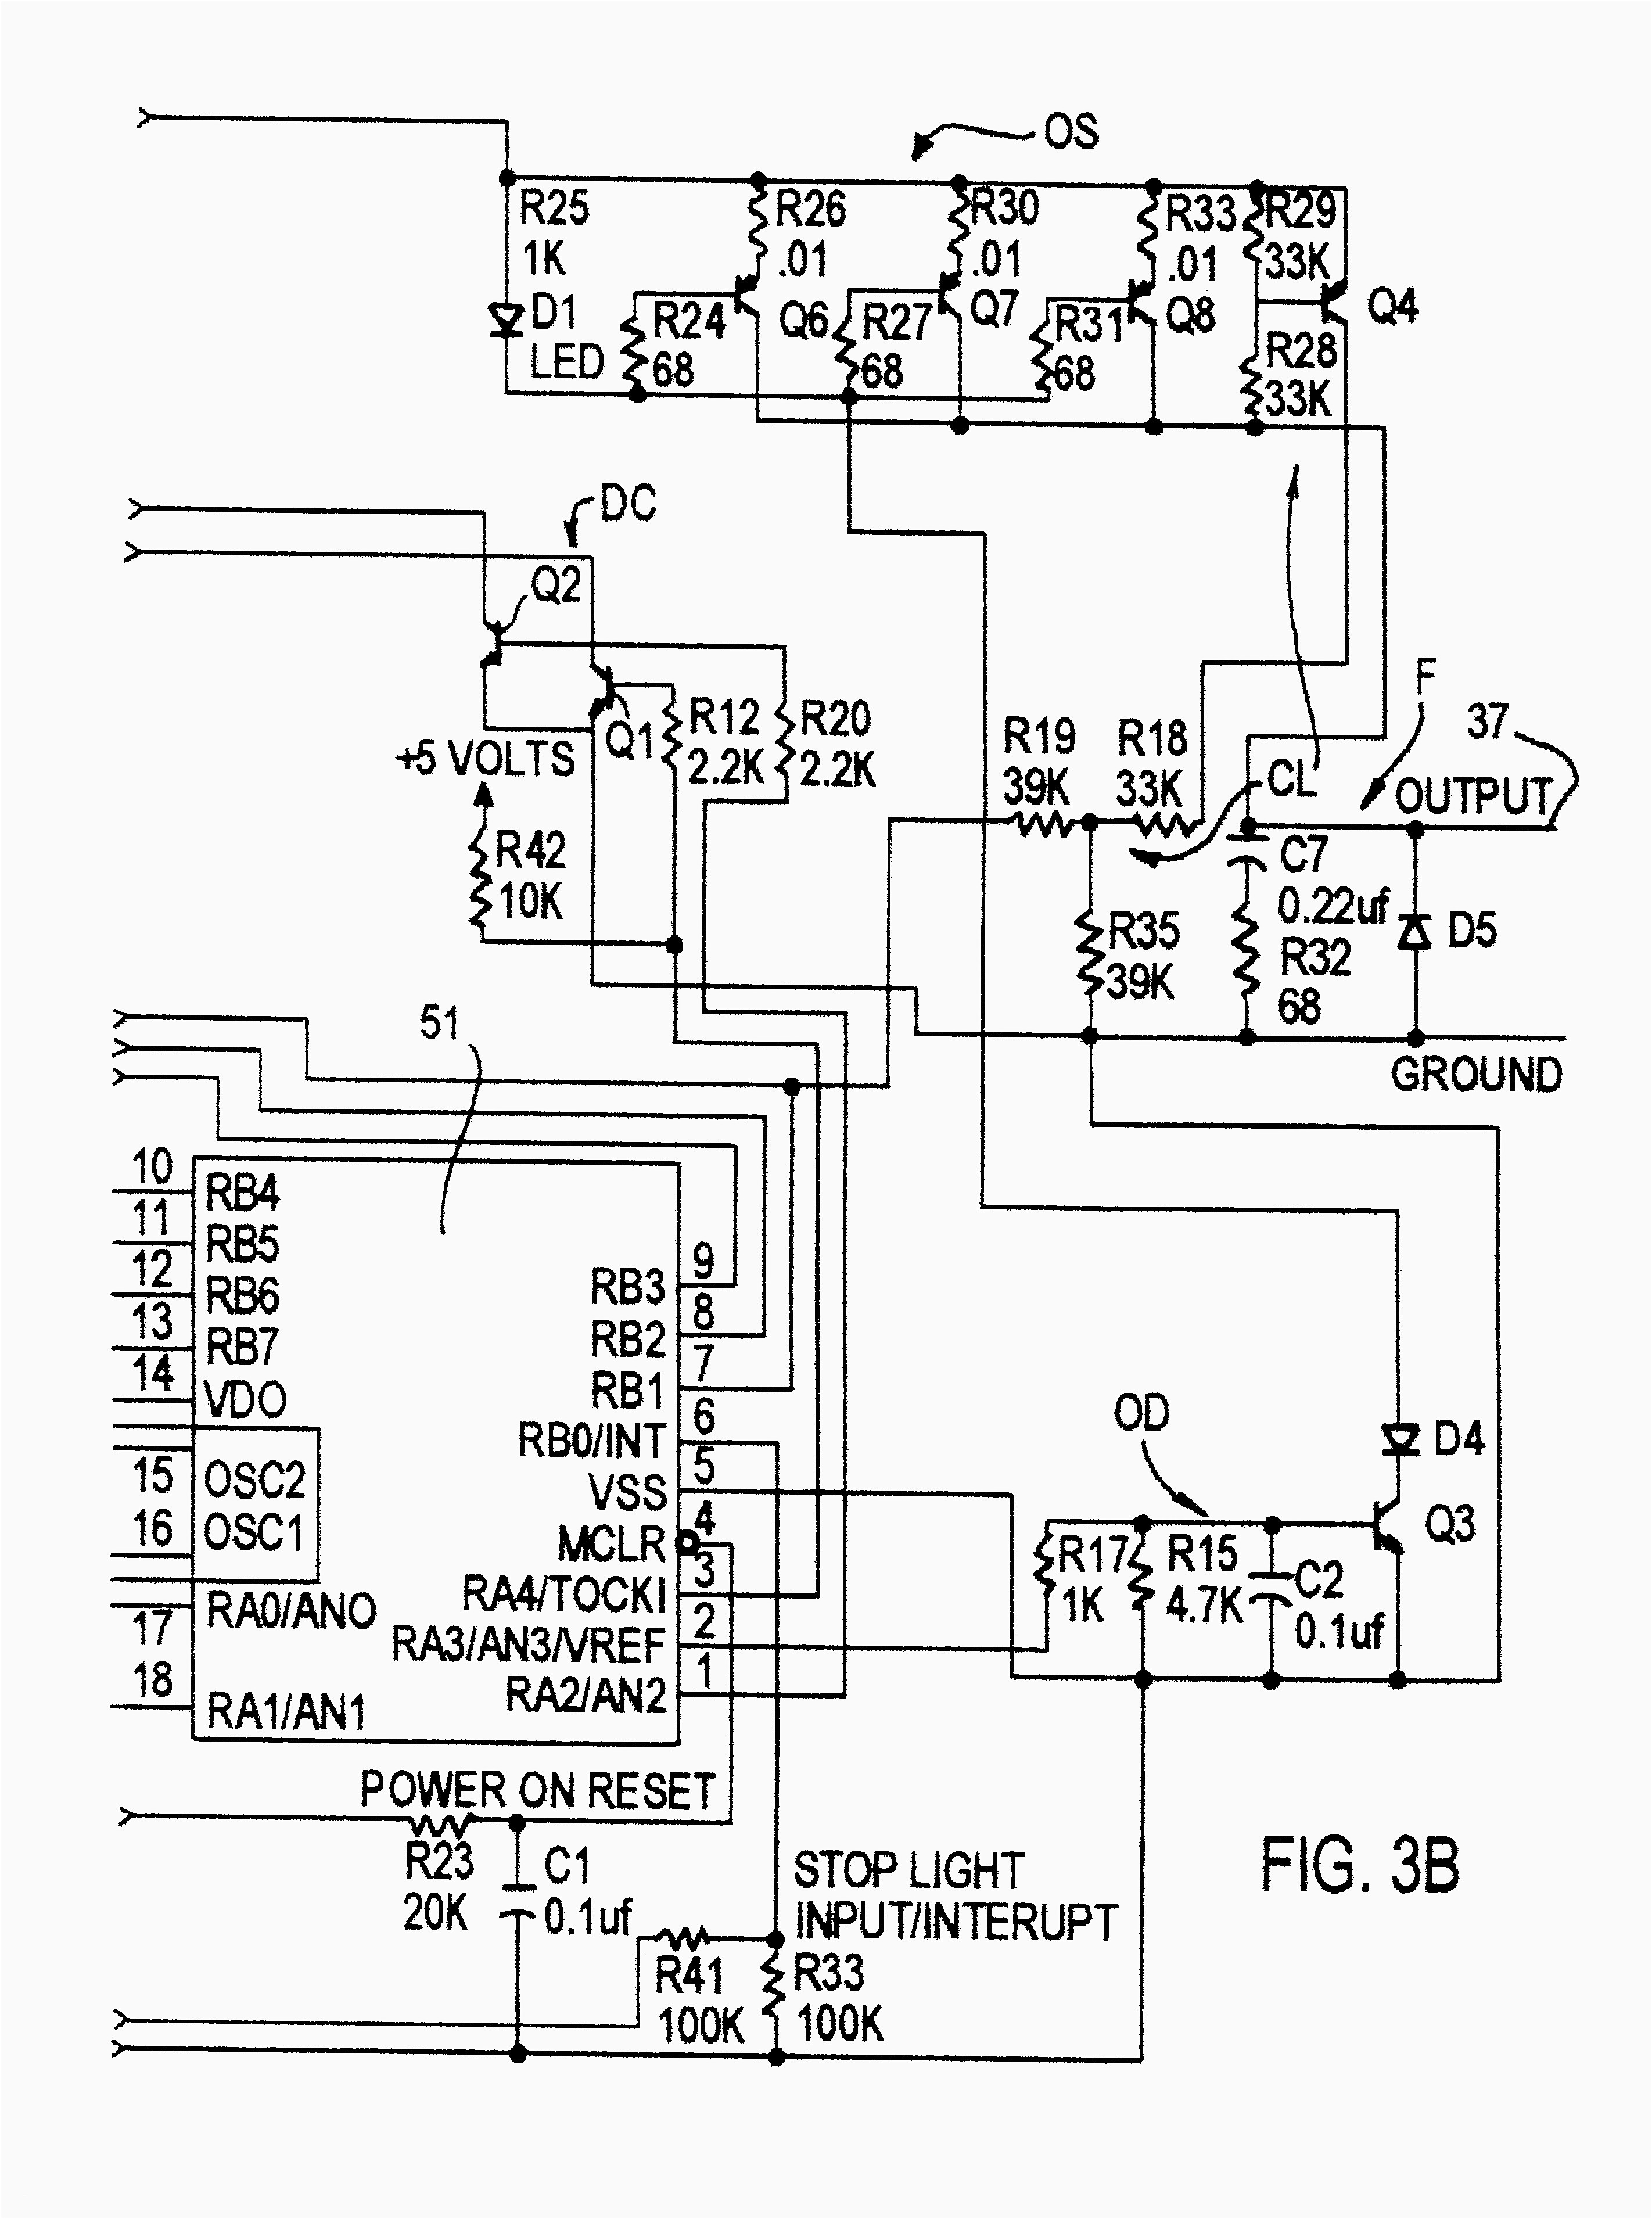 Electronic Circuit Diagram Awesome Tekonsha Primus Iq Wiring Diagram Manual Lovely Electric for